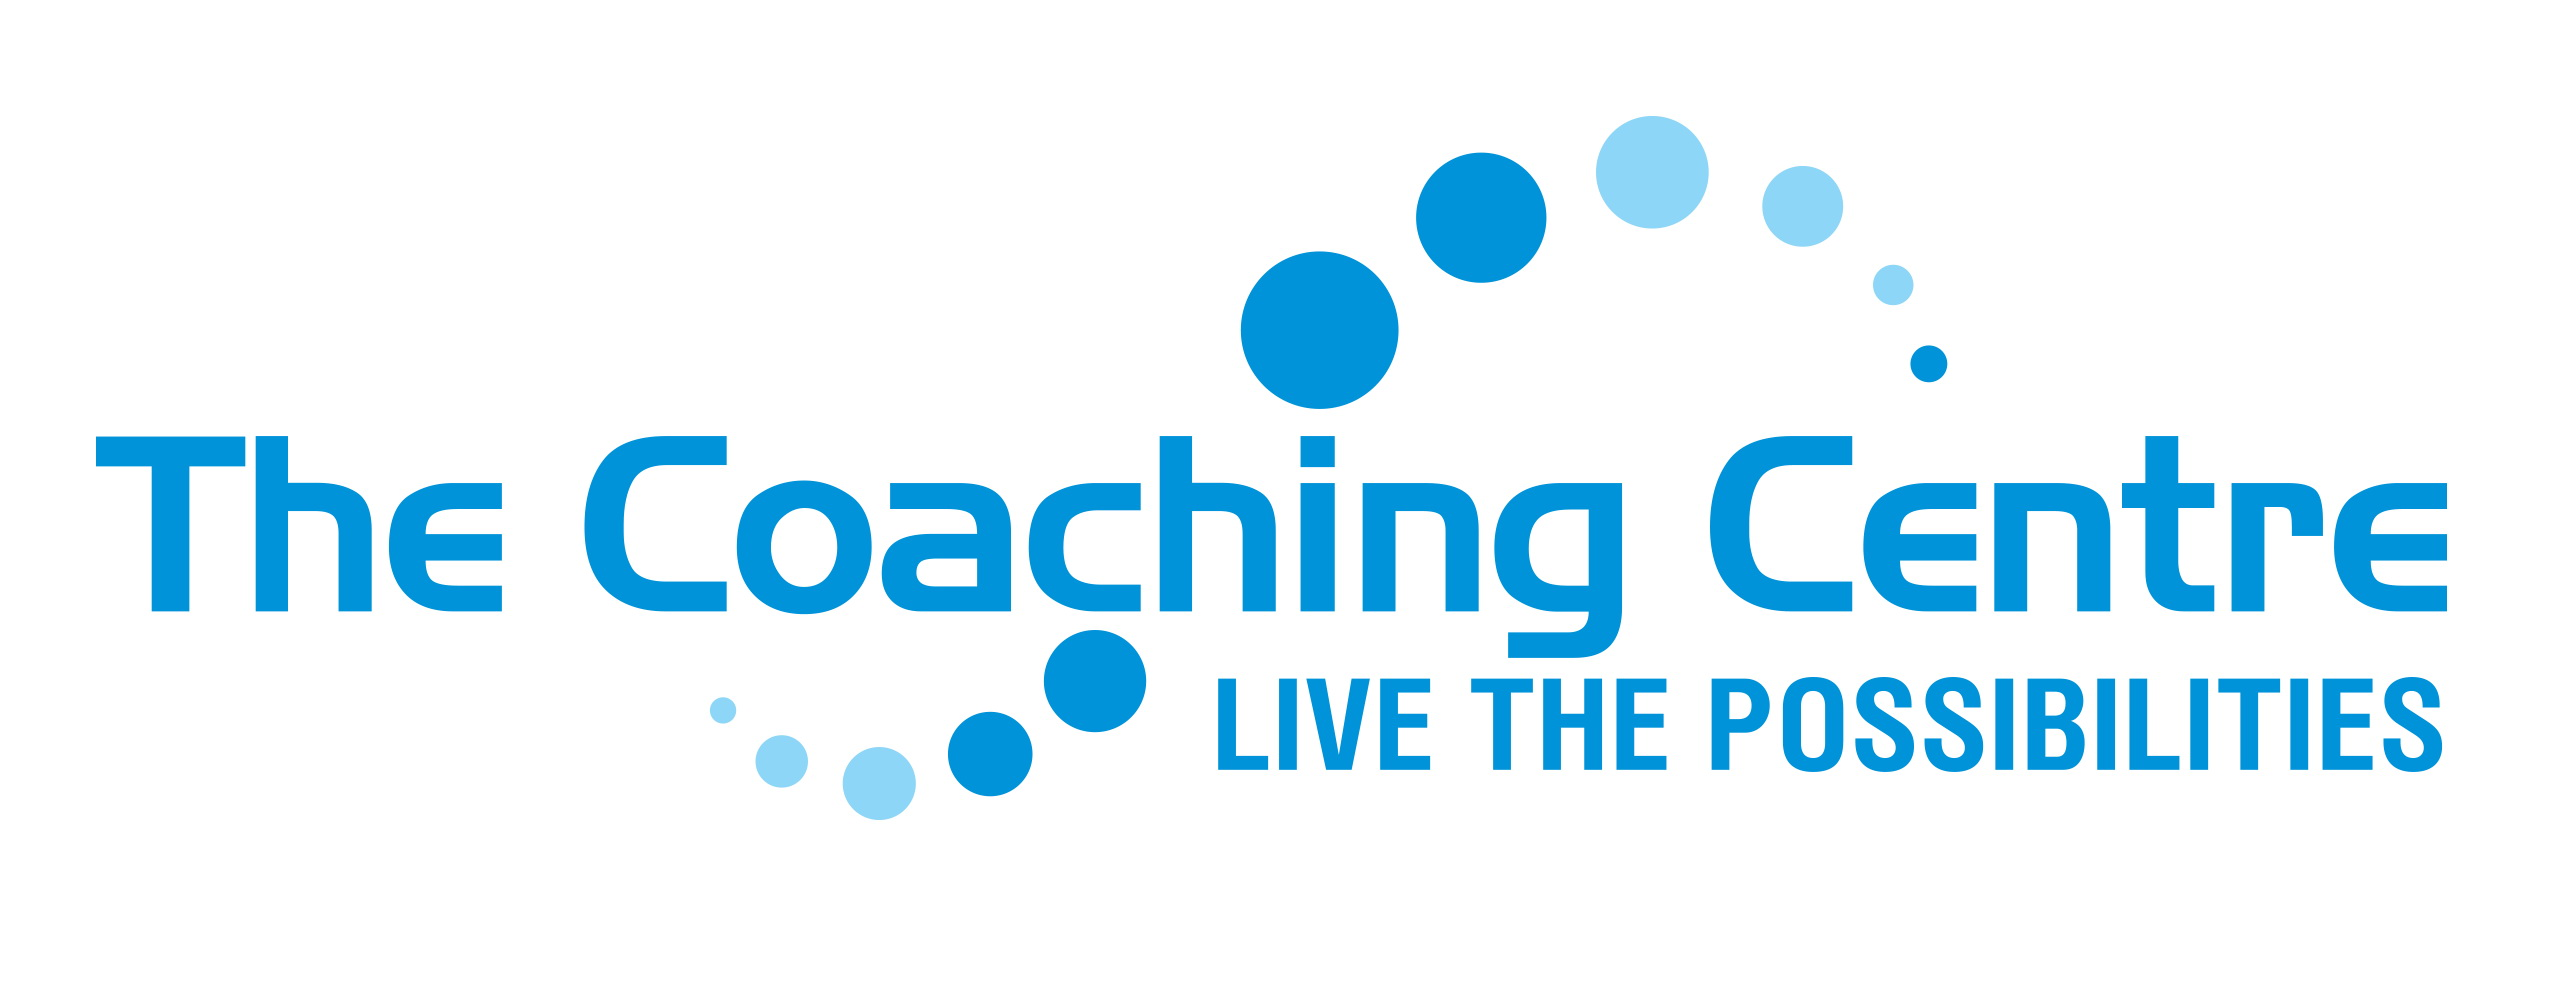 132 - The Coaching Centre